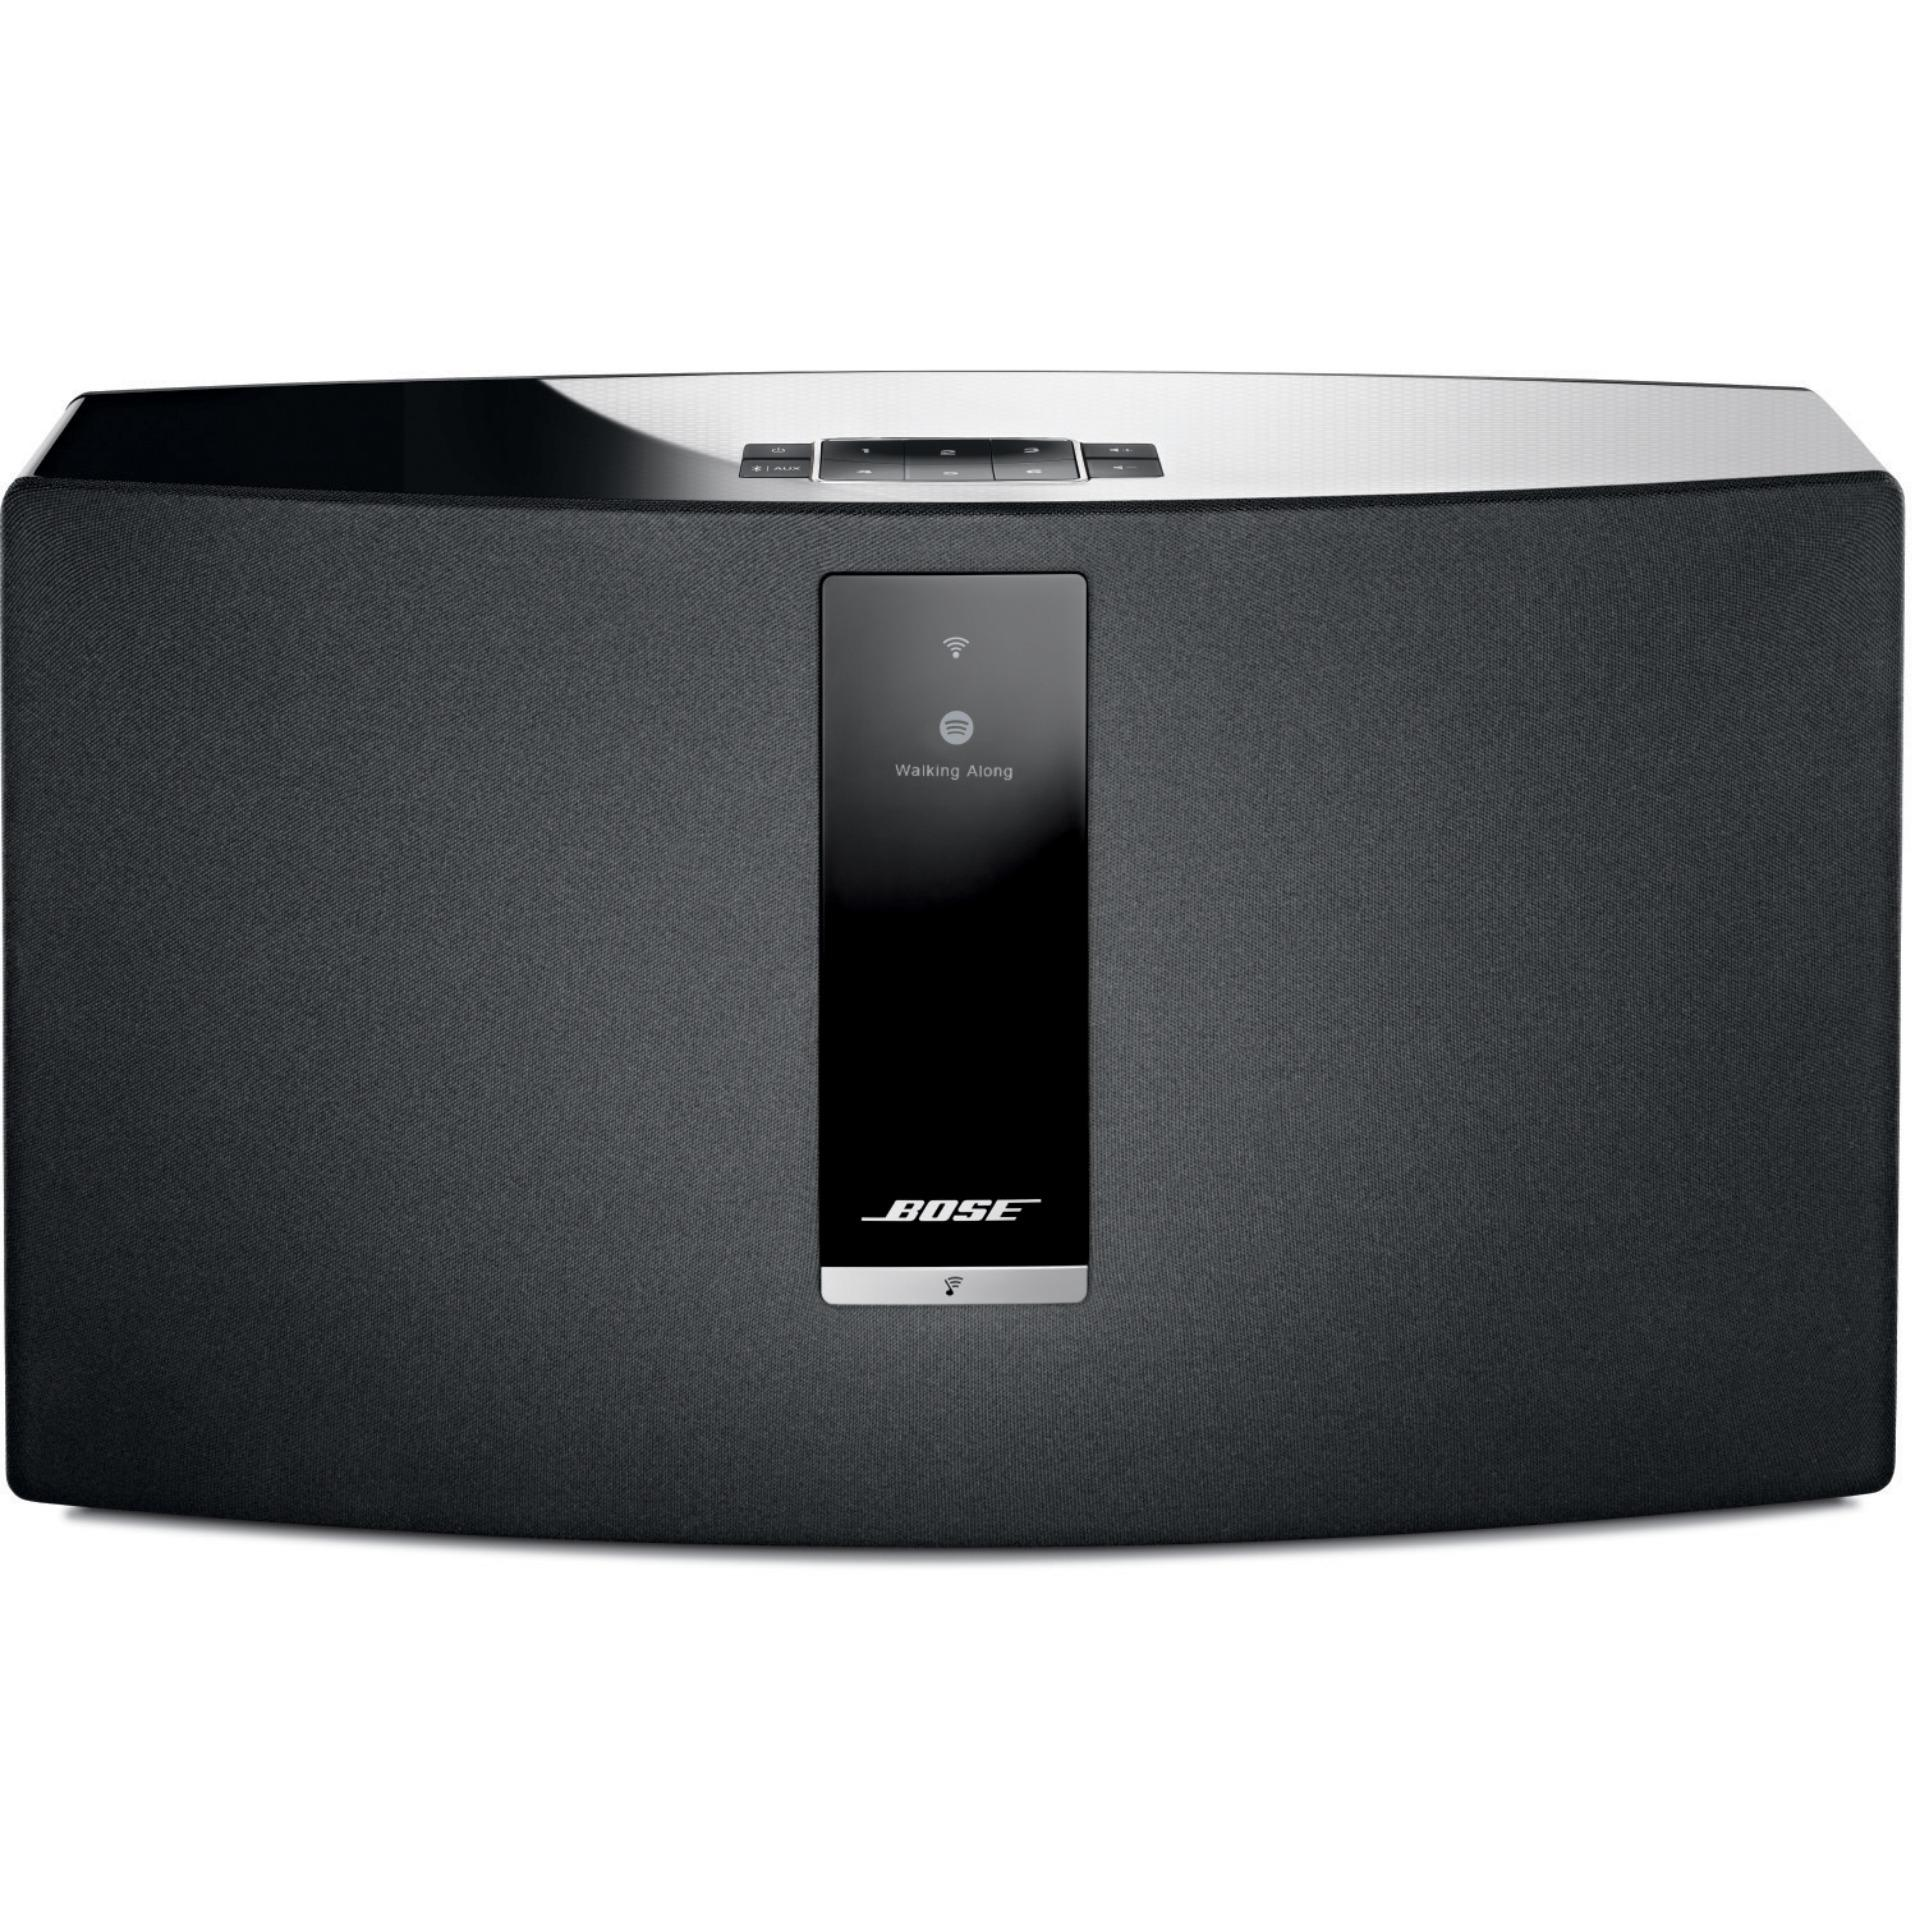 Bose Soundtouch® 30 Series Iii Wireless Music System Discount Code